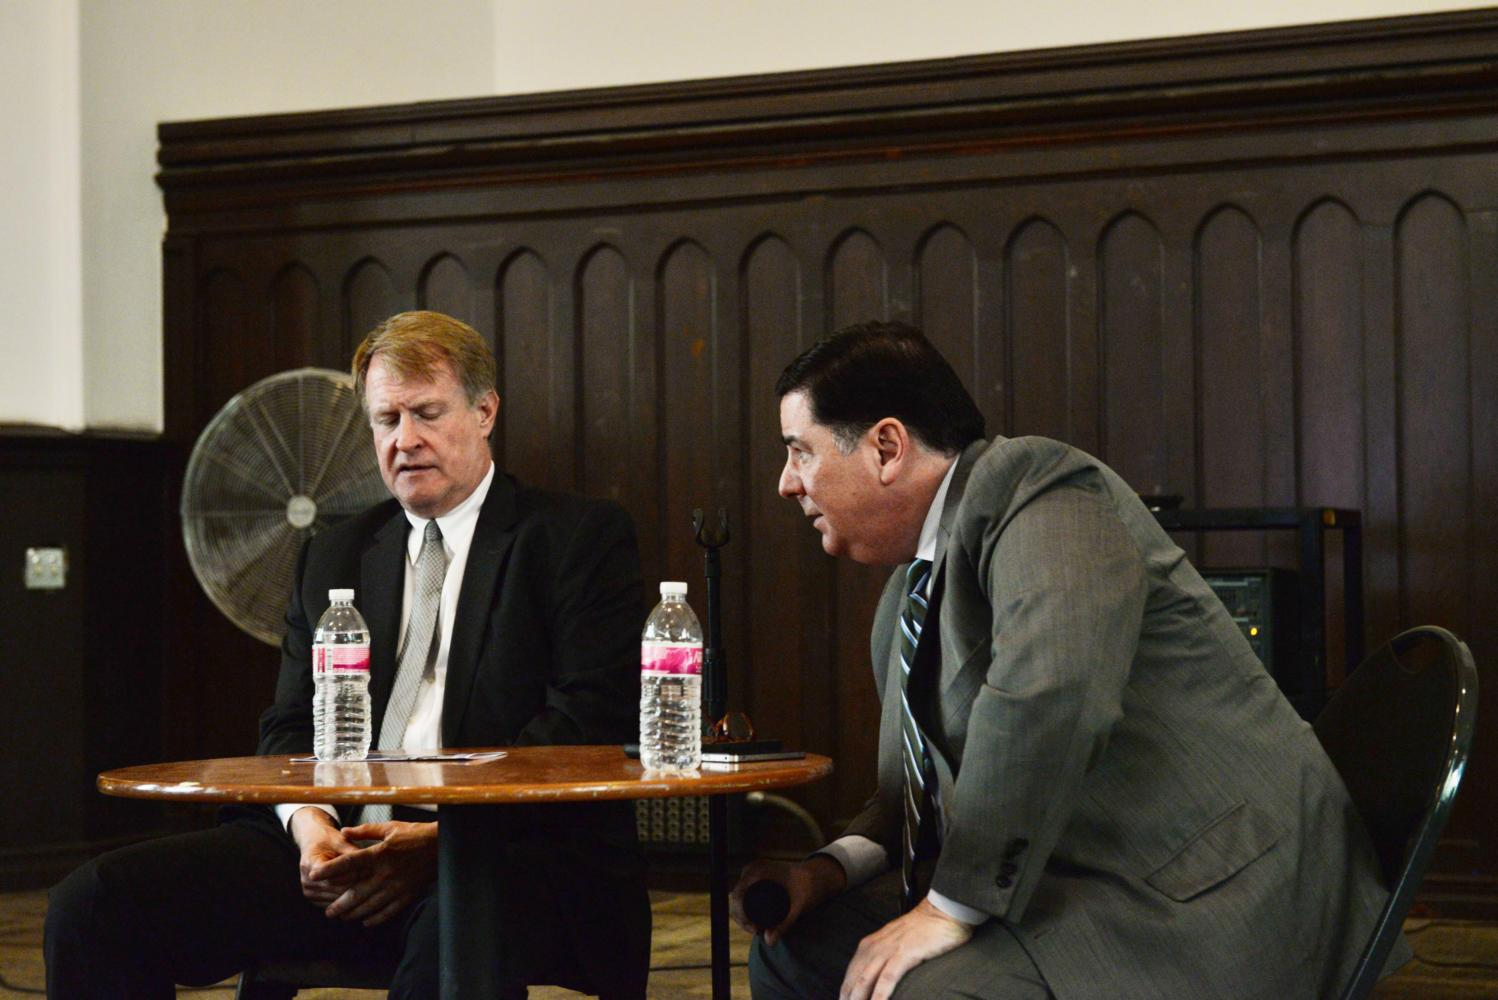 Alleghany County Executive Rich Fitzgerald and Mayor Bill Peduto discussed Amazon, small businesses and Beaver County's cracker plant in a town hall attended by 80 people Monday evening. (Photo by Jonathan Kunitsky | Staff Photographer)